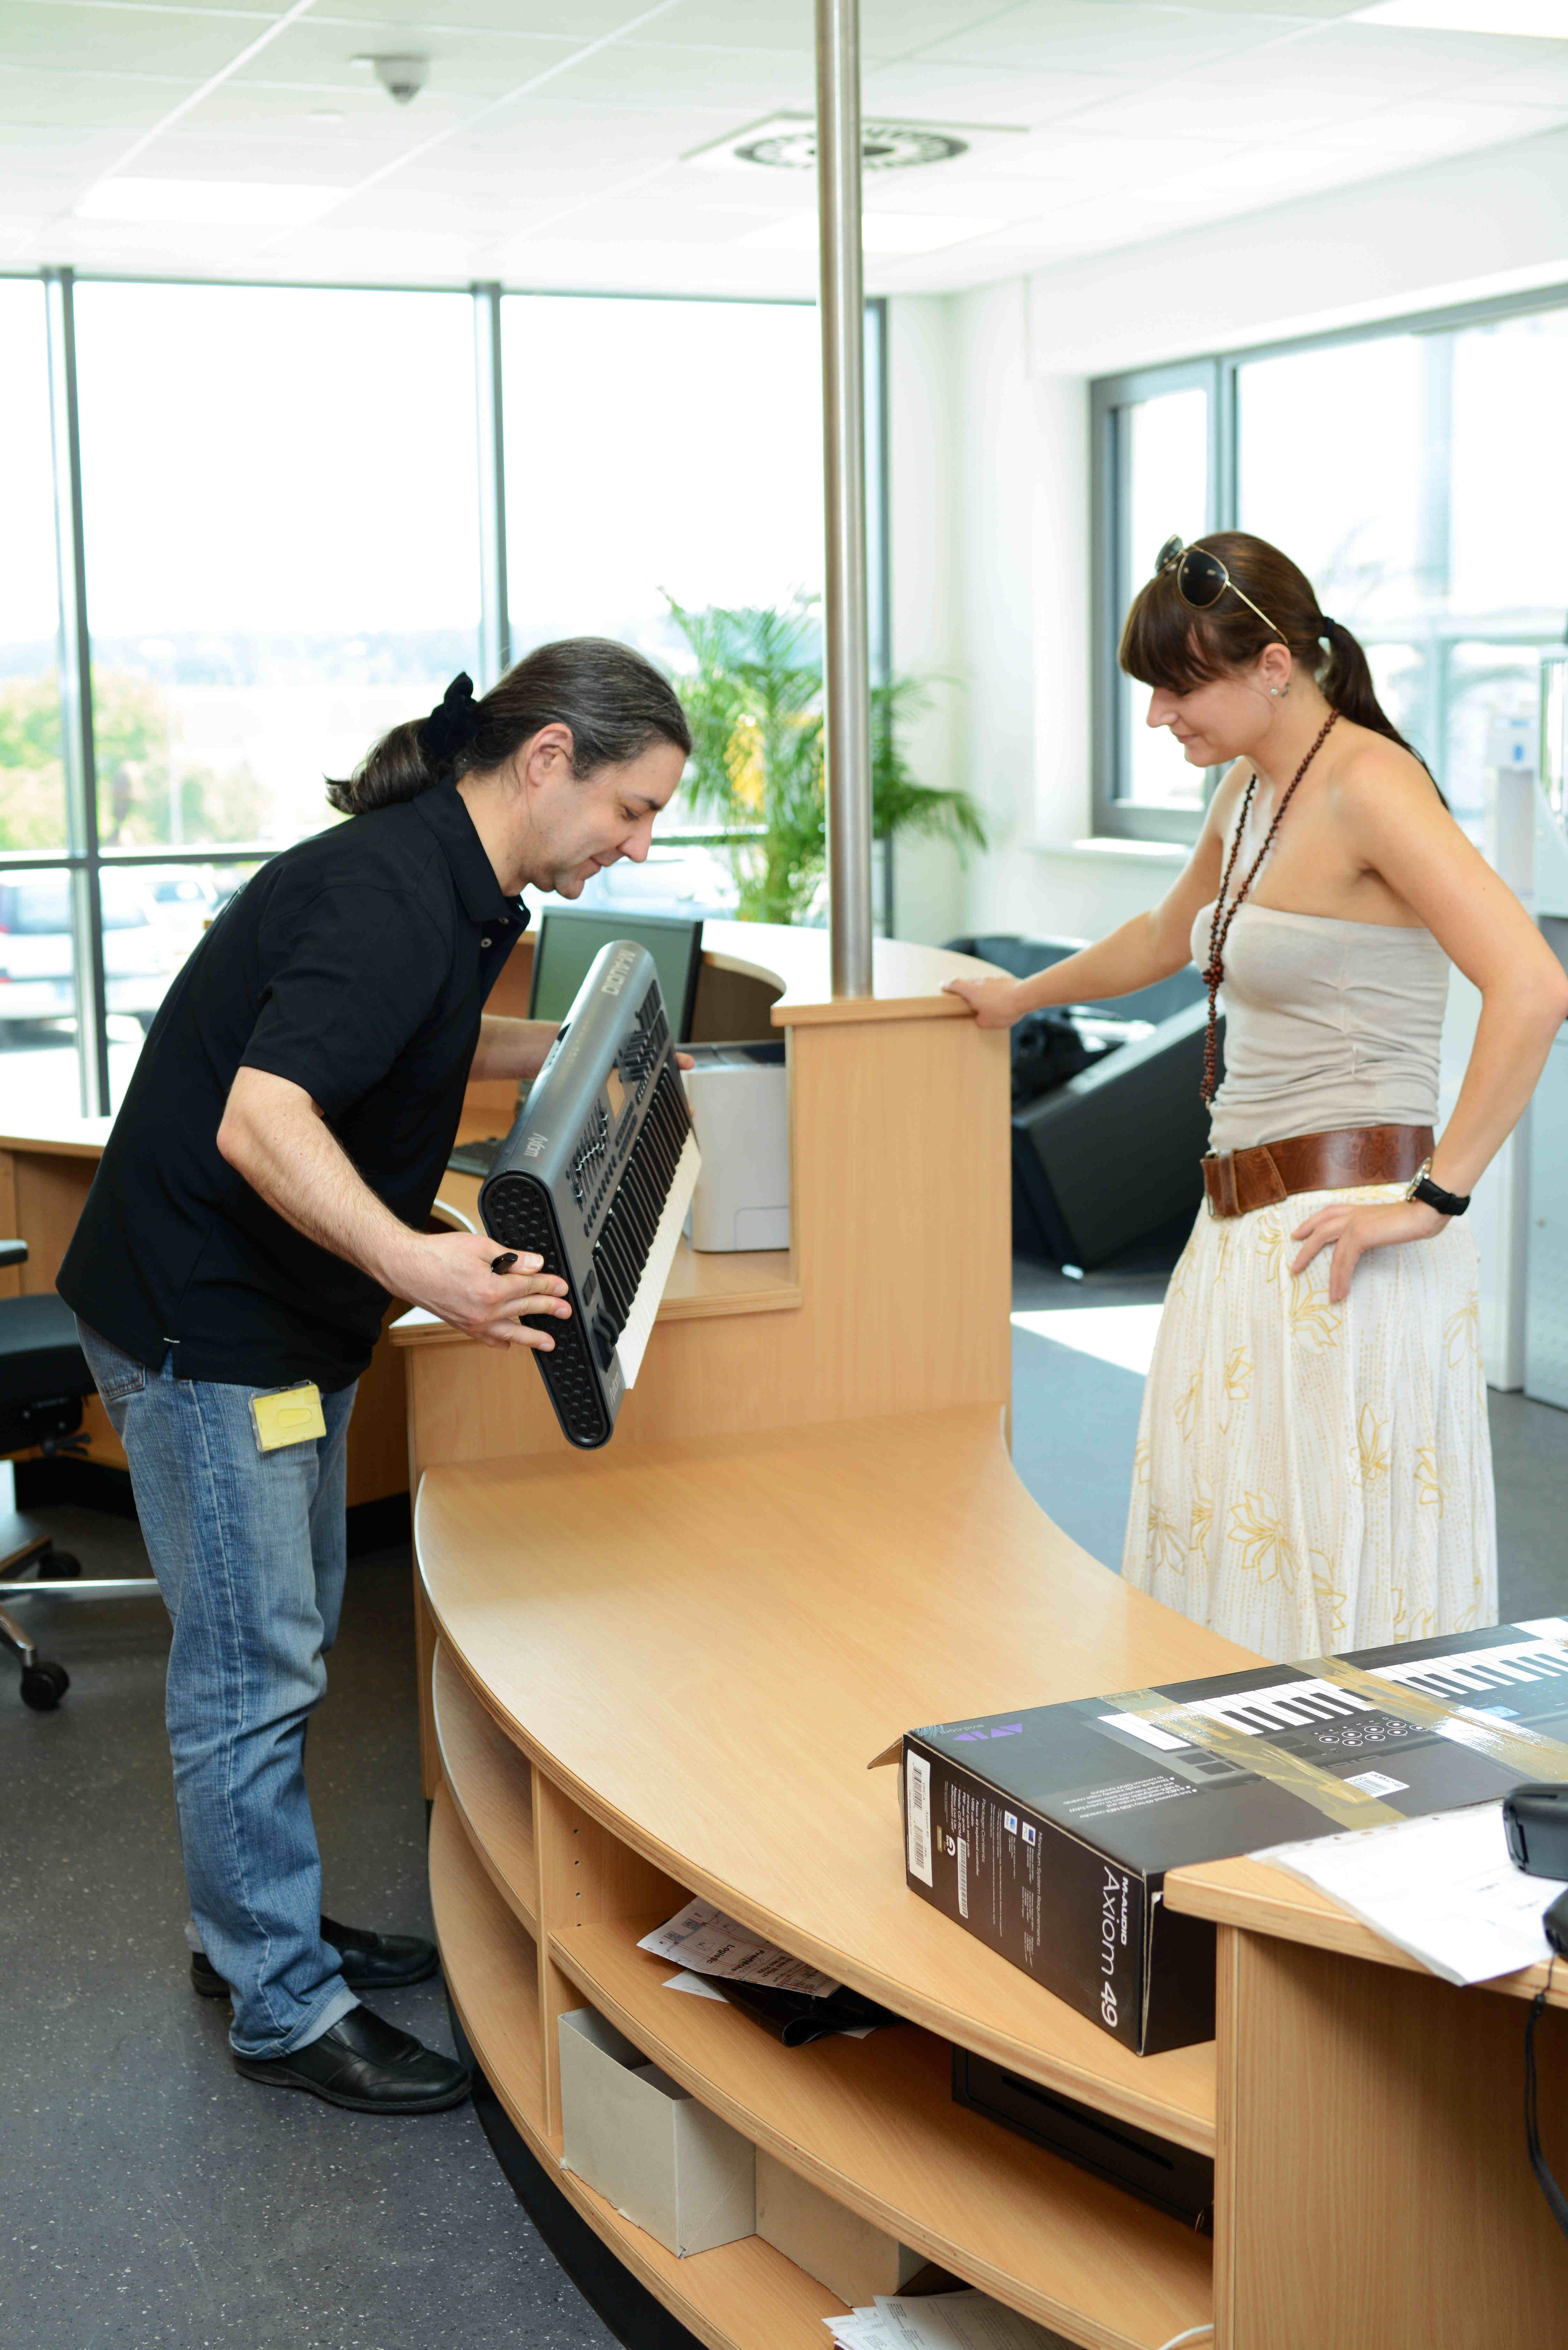 Receiving Room Interior Design: The Receiving Office Of Our Service Center #service